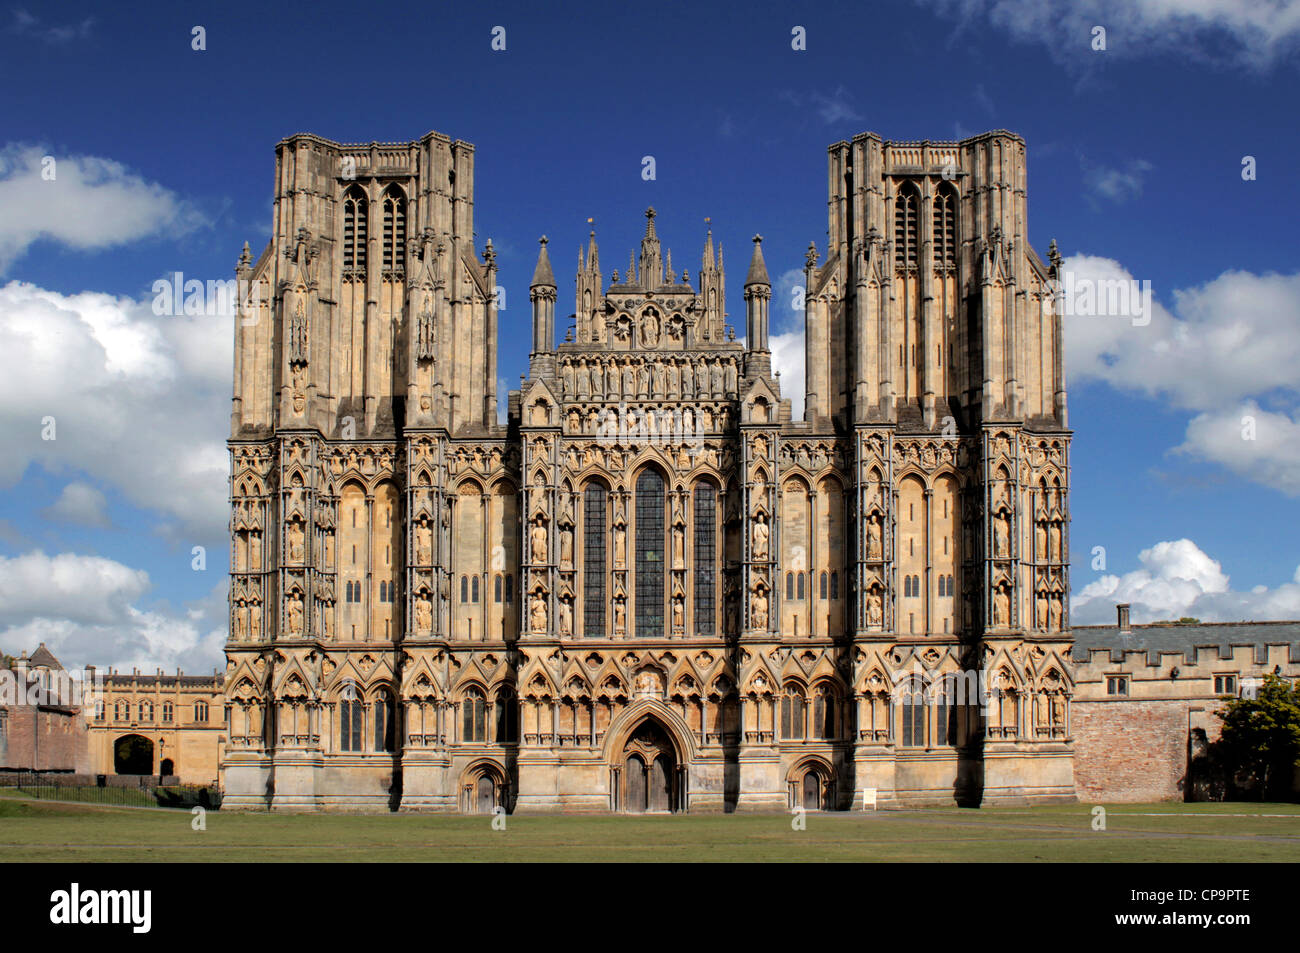 West Front of Wells Cathedral, Somerset, England, UK - Stock Image